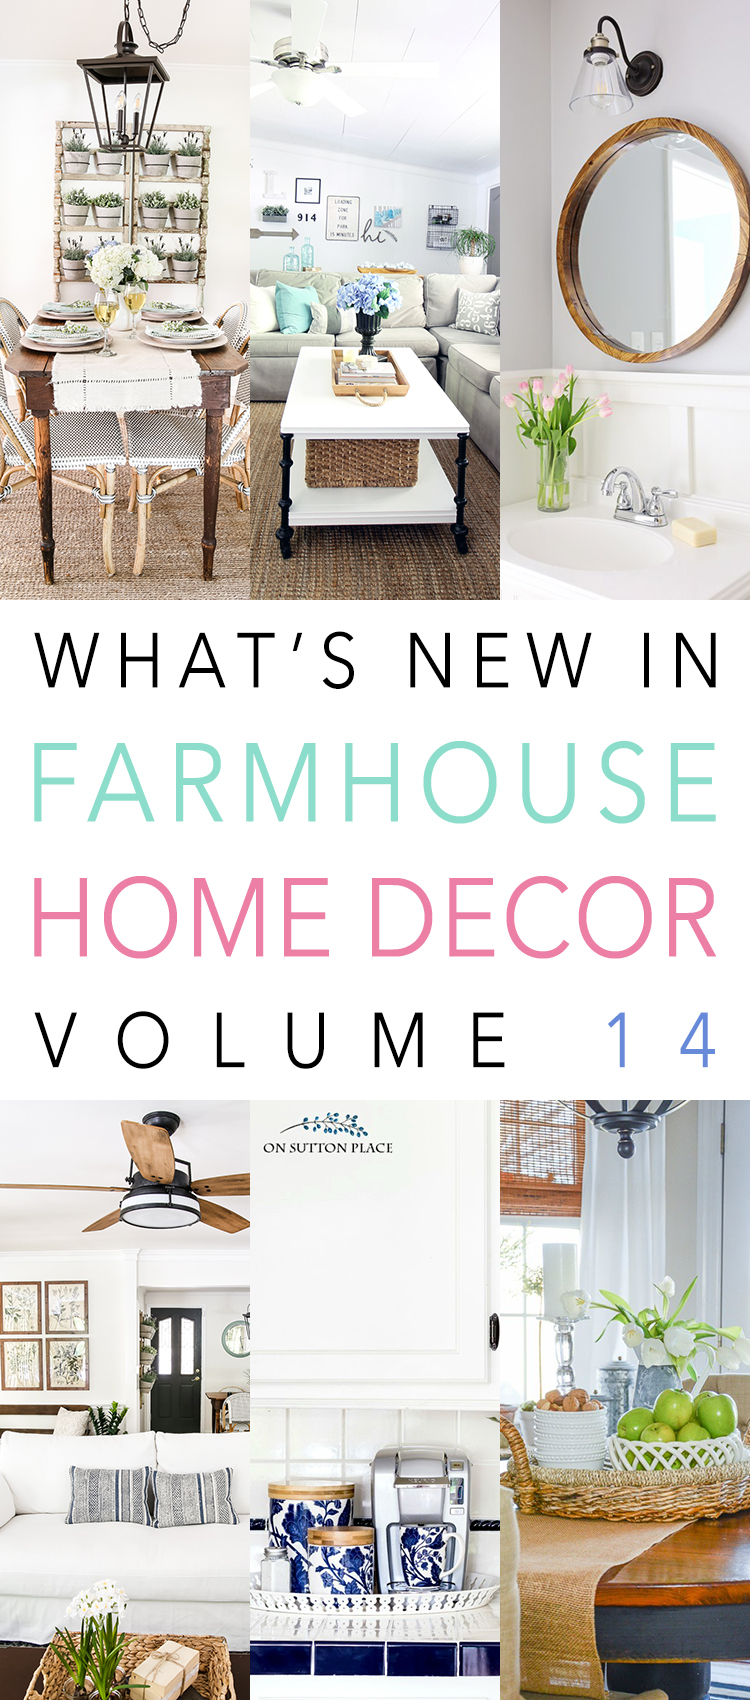 Every Farmhouse Needs A Beautiful Farmhouse Mirror And Angela Over At  Angela Marie Made Is Going To Show You How To Make One Of Your Very Own For  A Lot Less ...